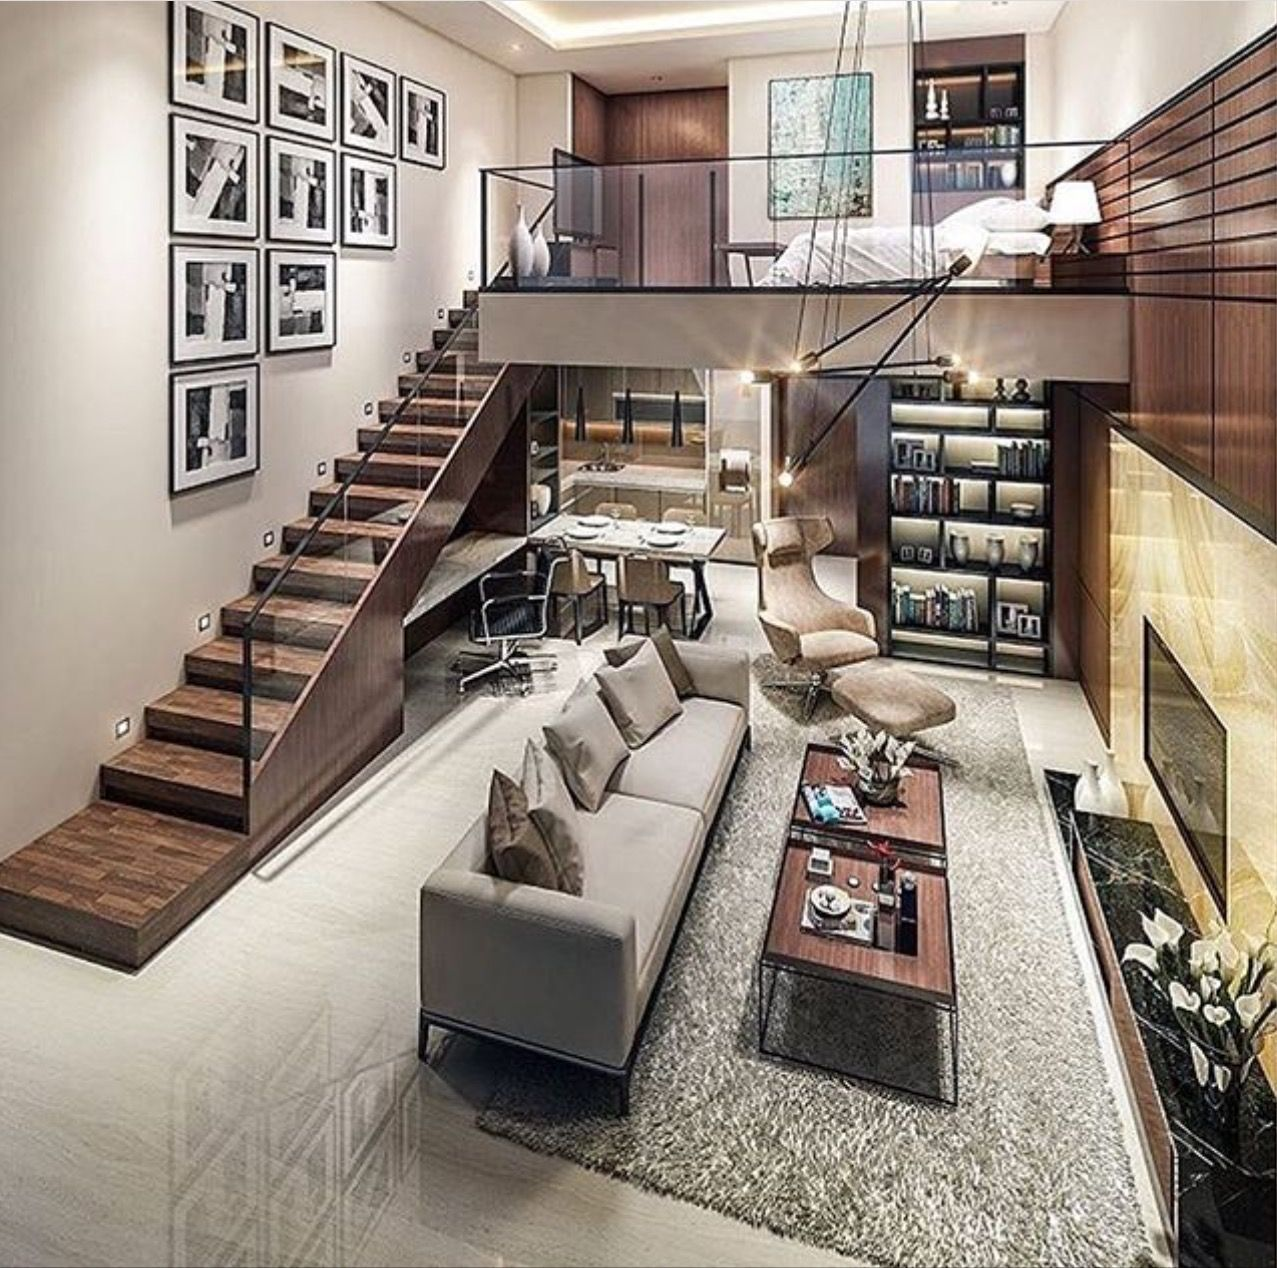 Mezzanine loft bedroom ideas  p ι n т e r e ѕ т   wavyĸιara  Arquitetura  Pinterest  Lofts